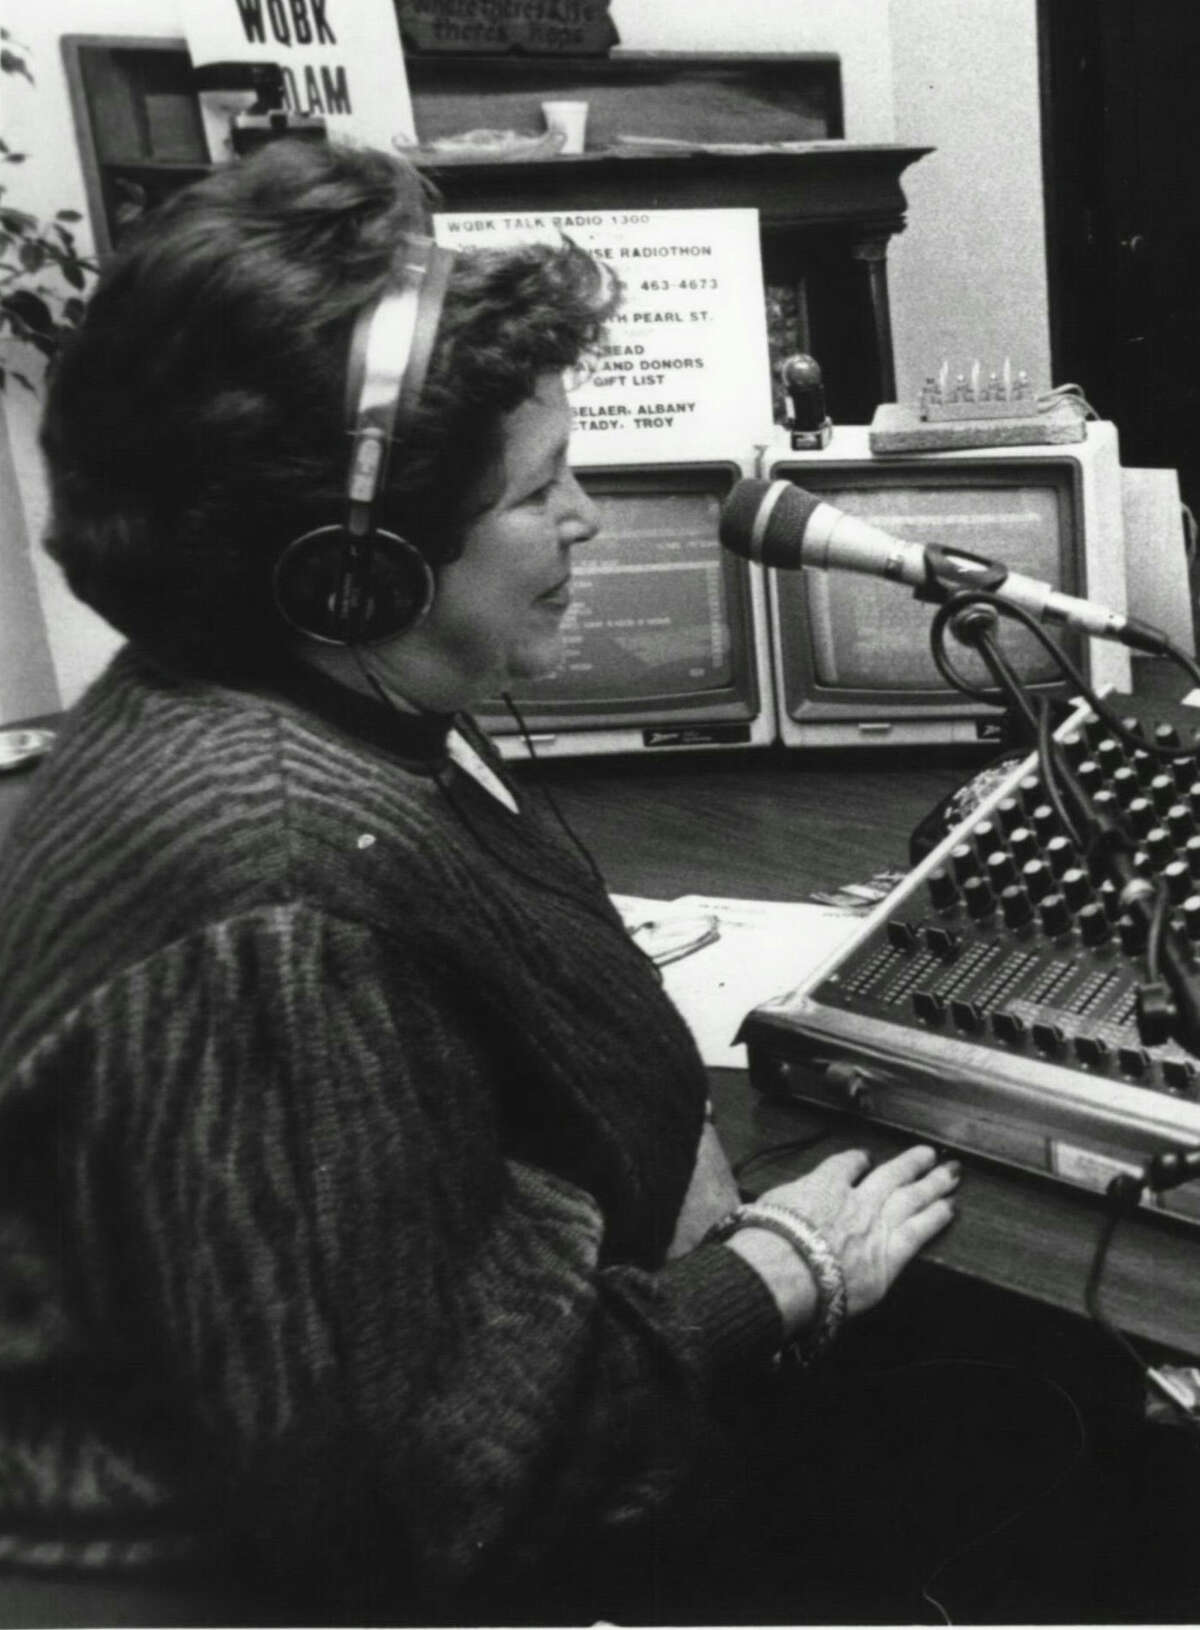 Stevi Swire at the microphone for WQBK-AM in 1986. (Times Union file photo.)